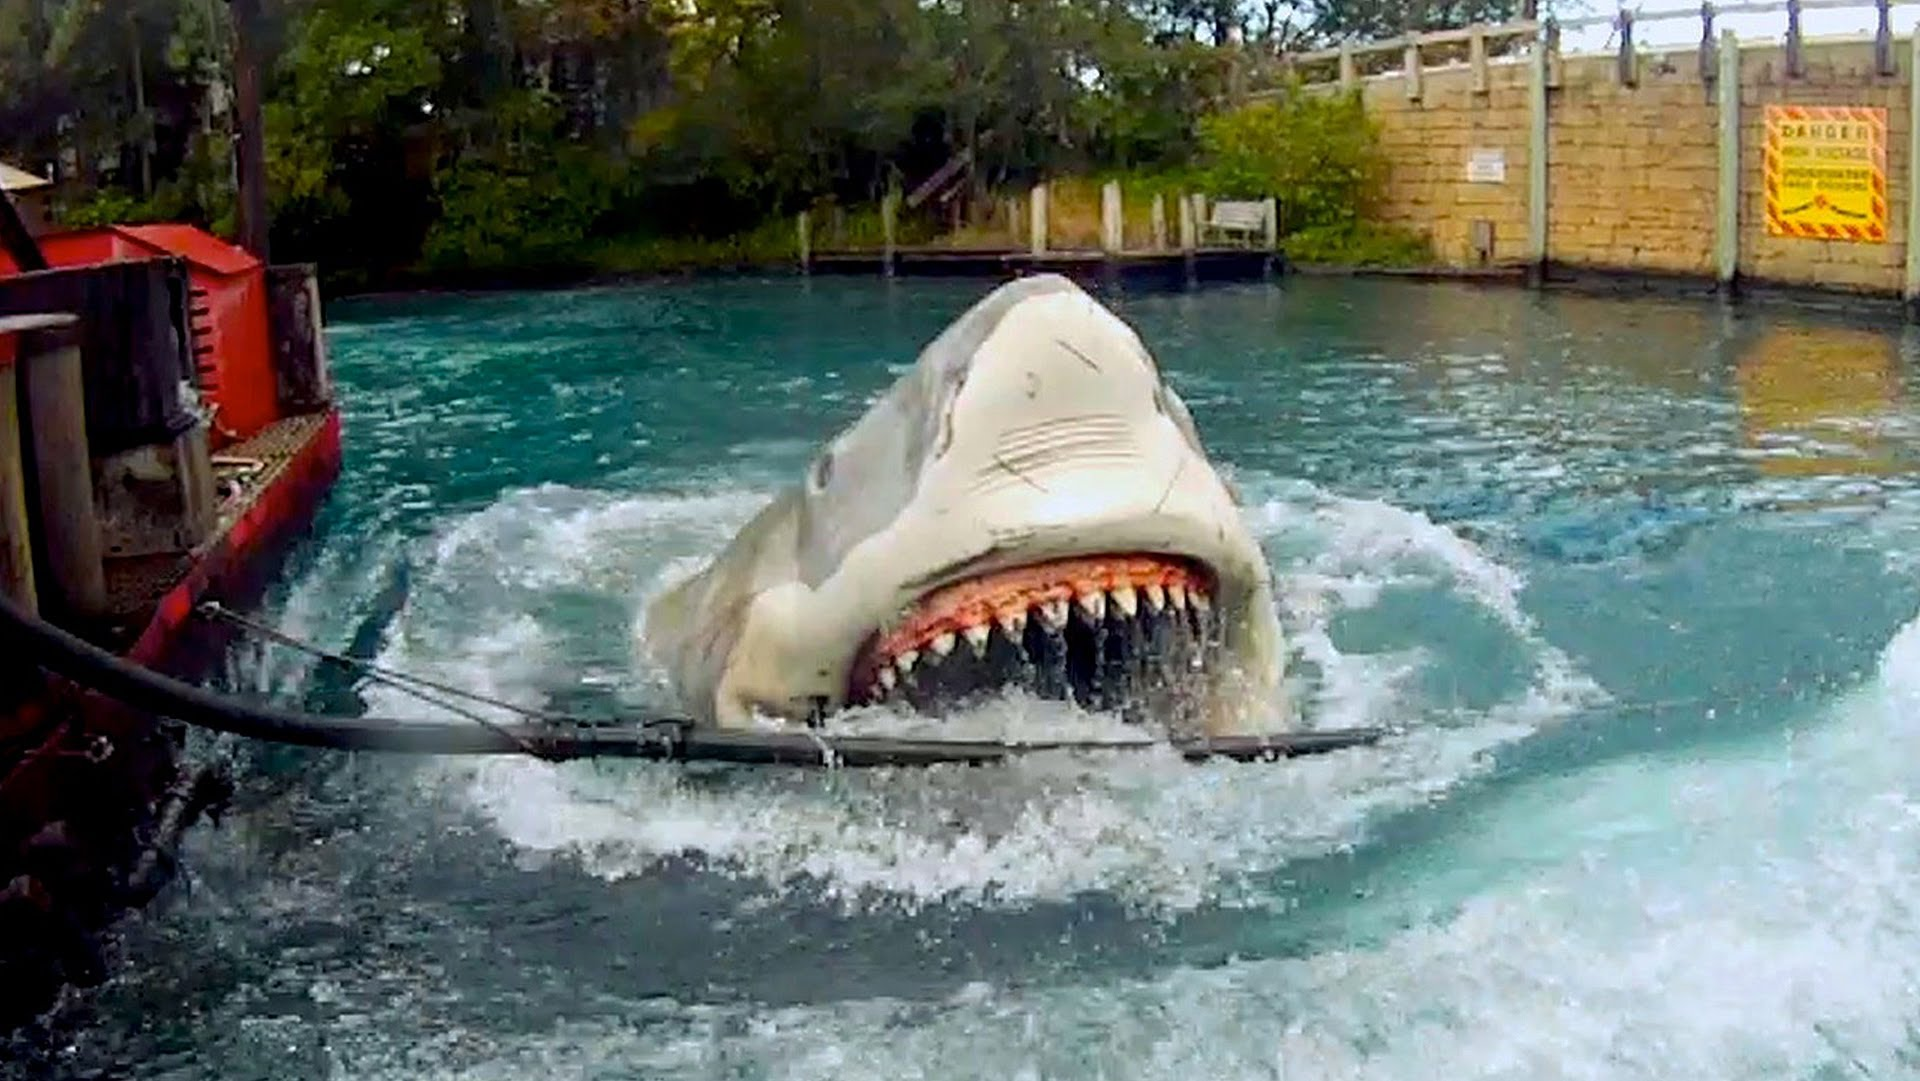 One Fish, Two Fish, Red Fish, Blue Fish Universal Orlando, Jaws Ride: The Movie - An ultimate tribute to the Universal ...